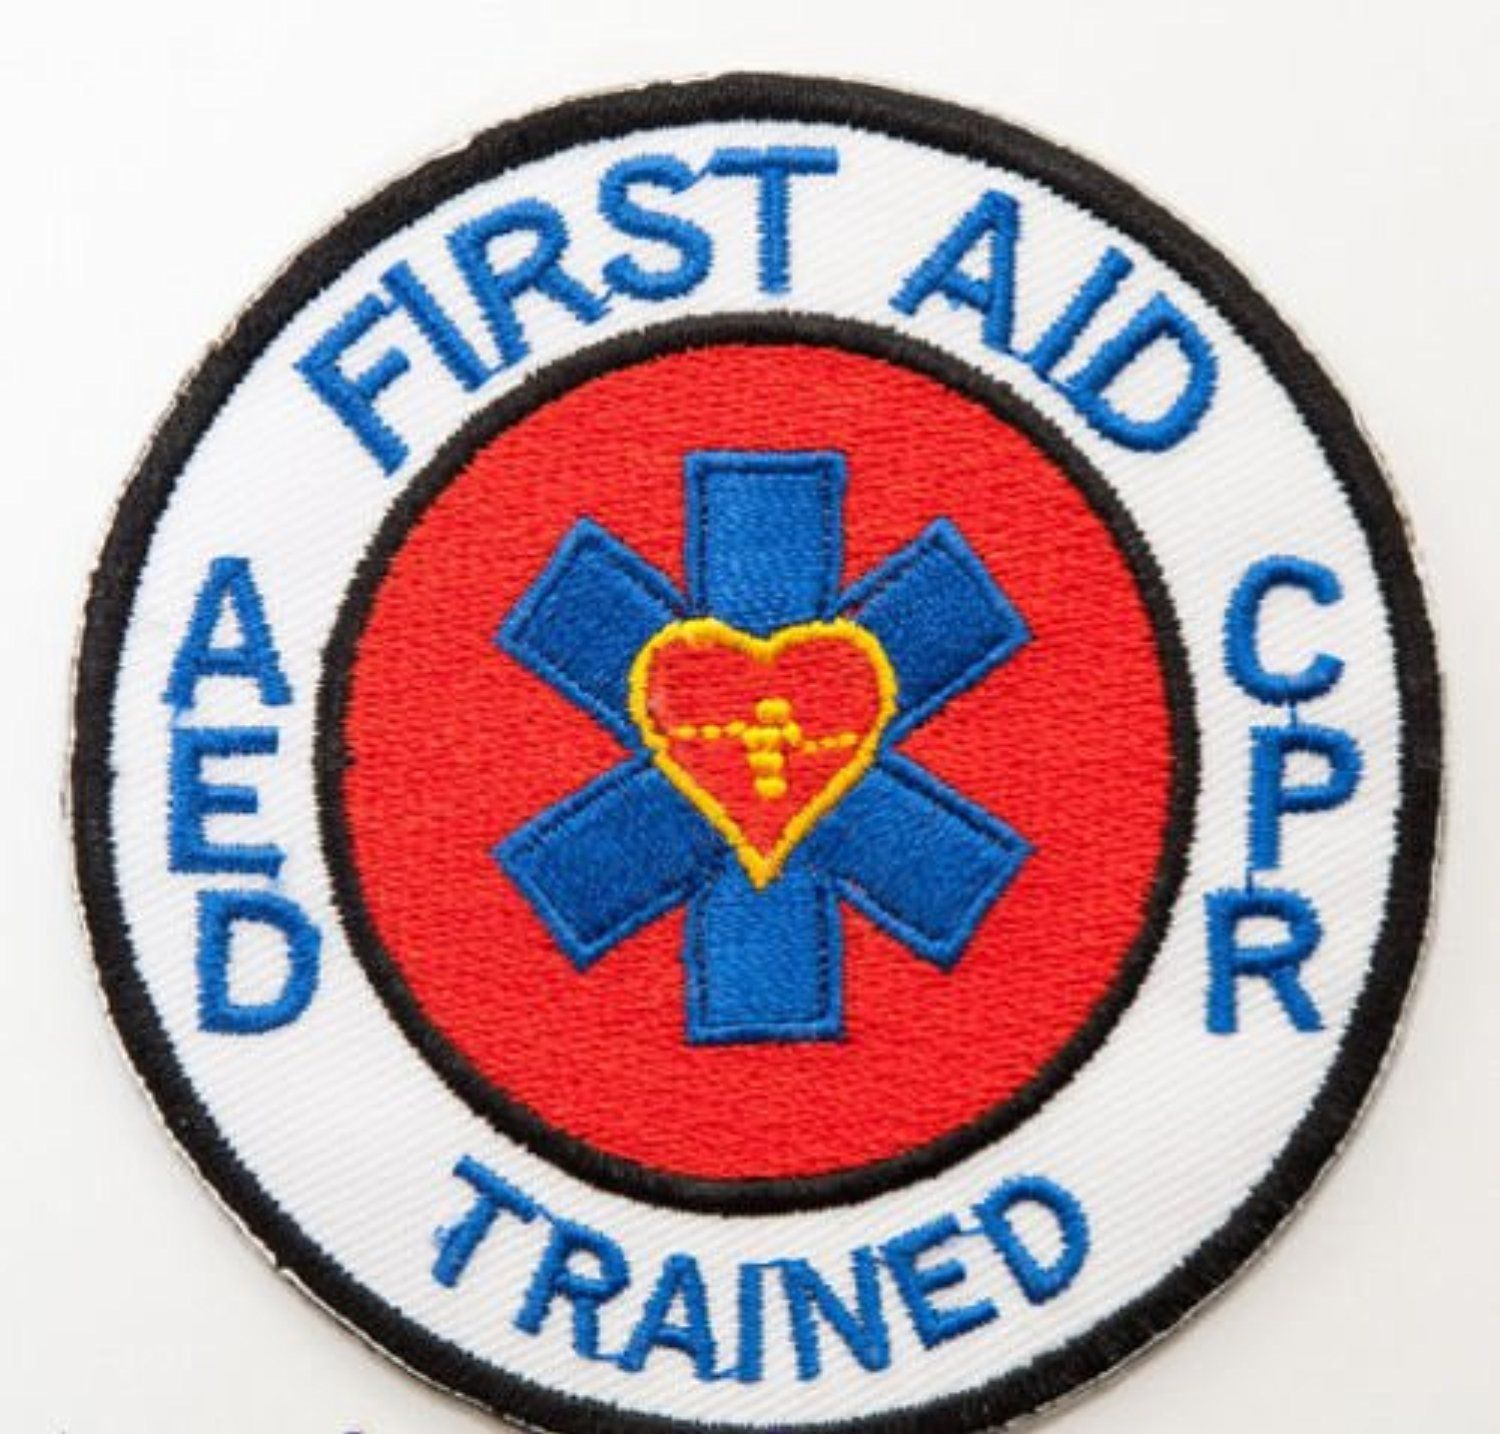 First Aid Cpr Trained Embroidered Iron On Patch 3 Aed Medic Red